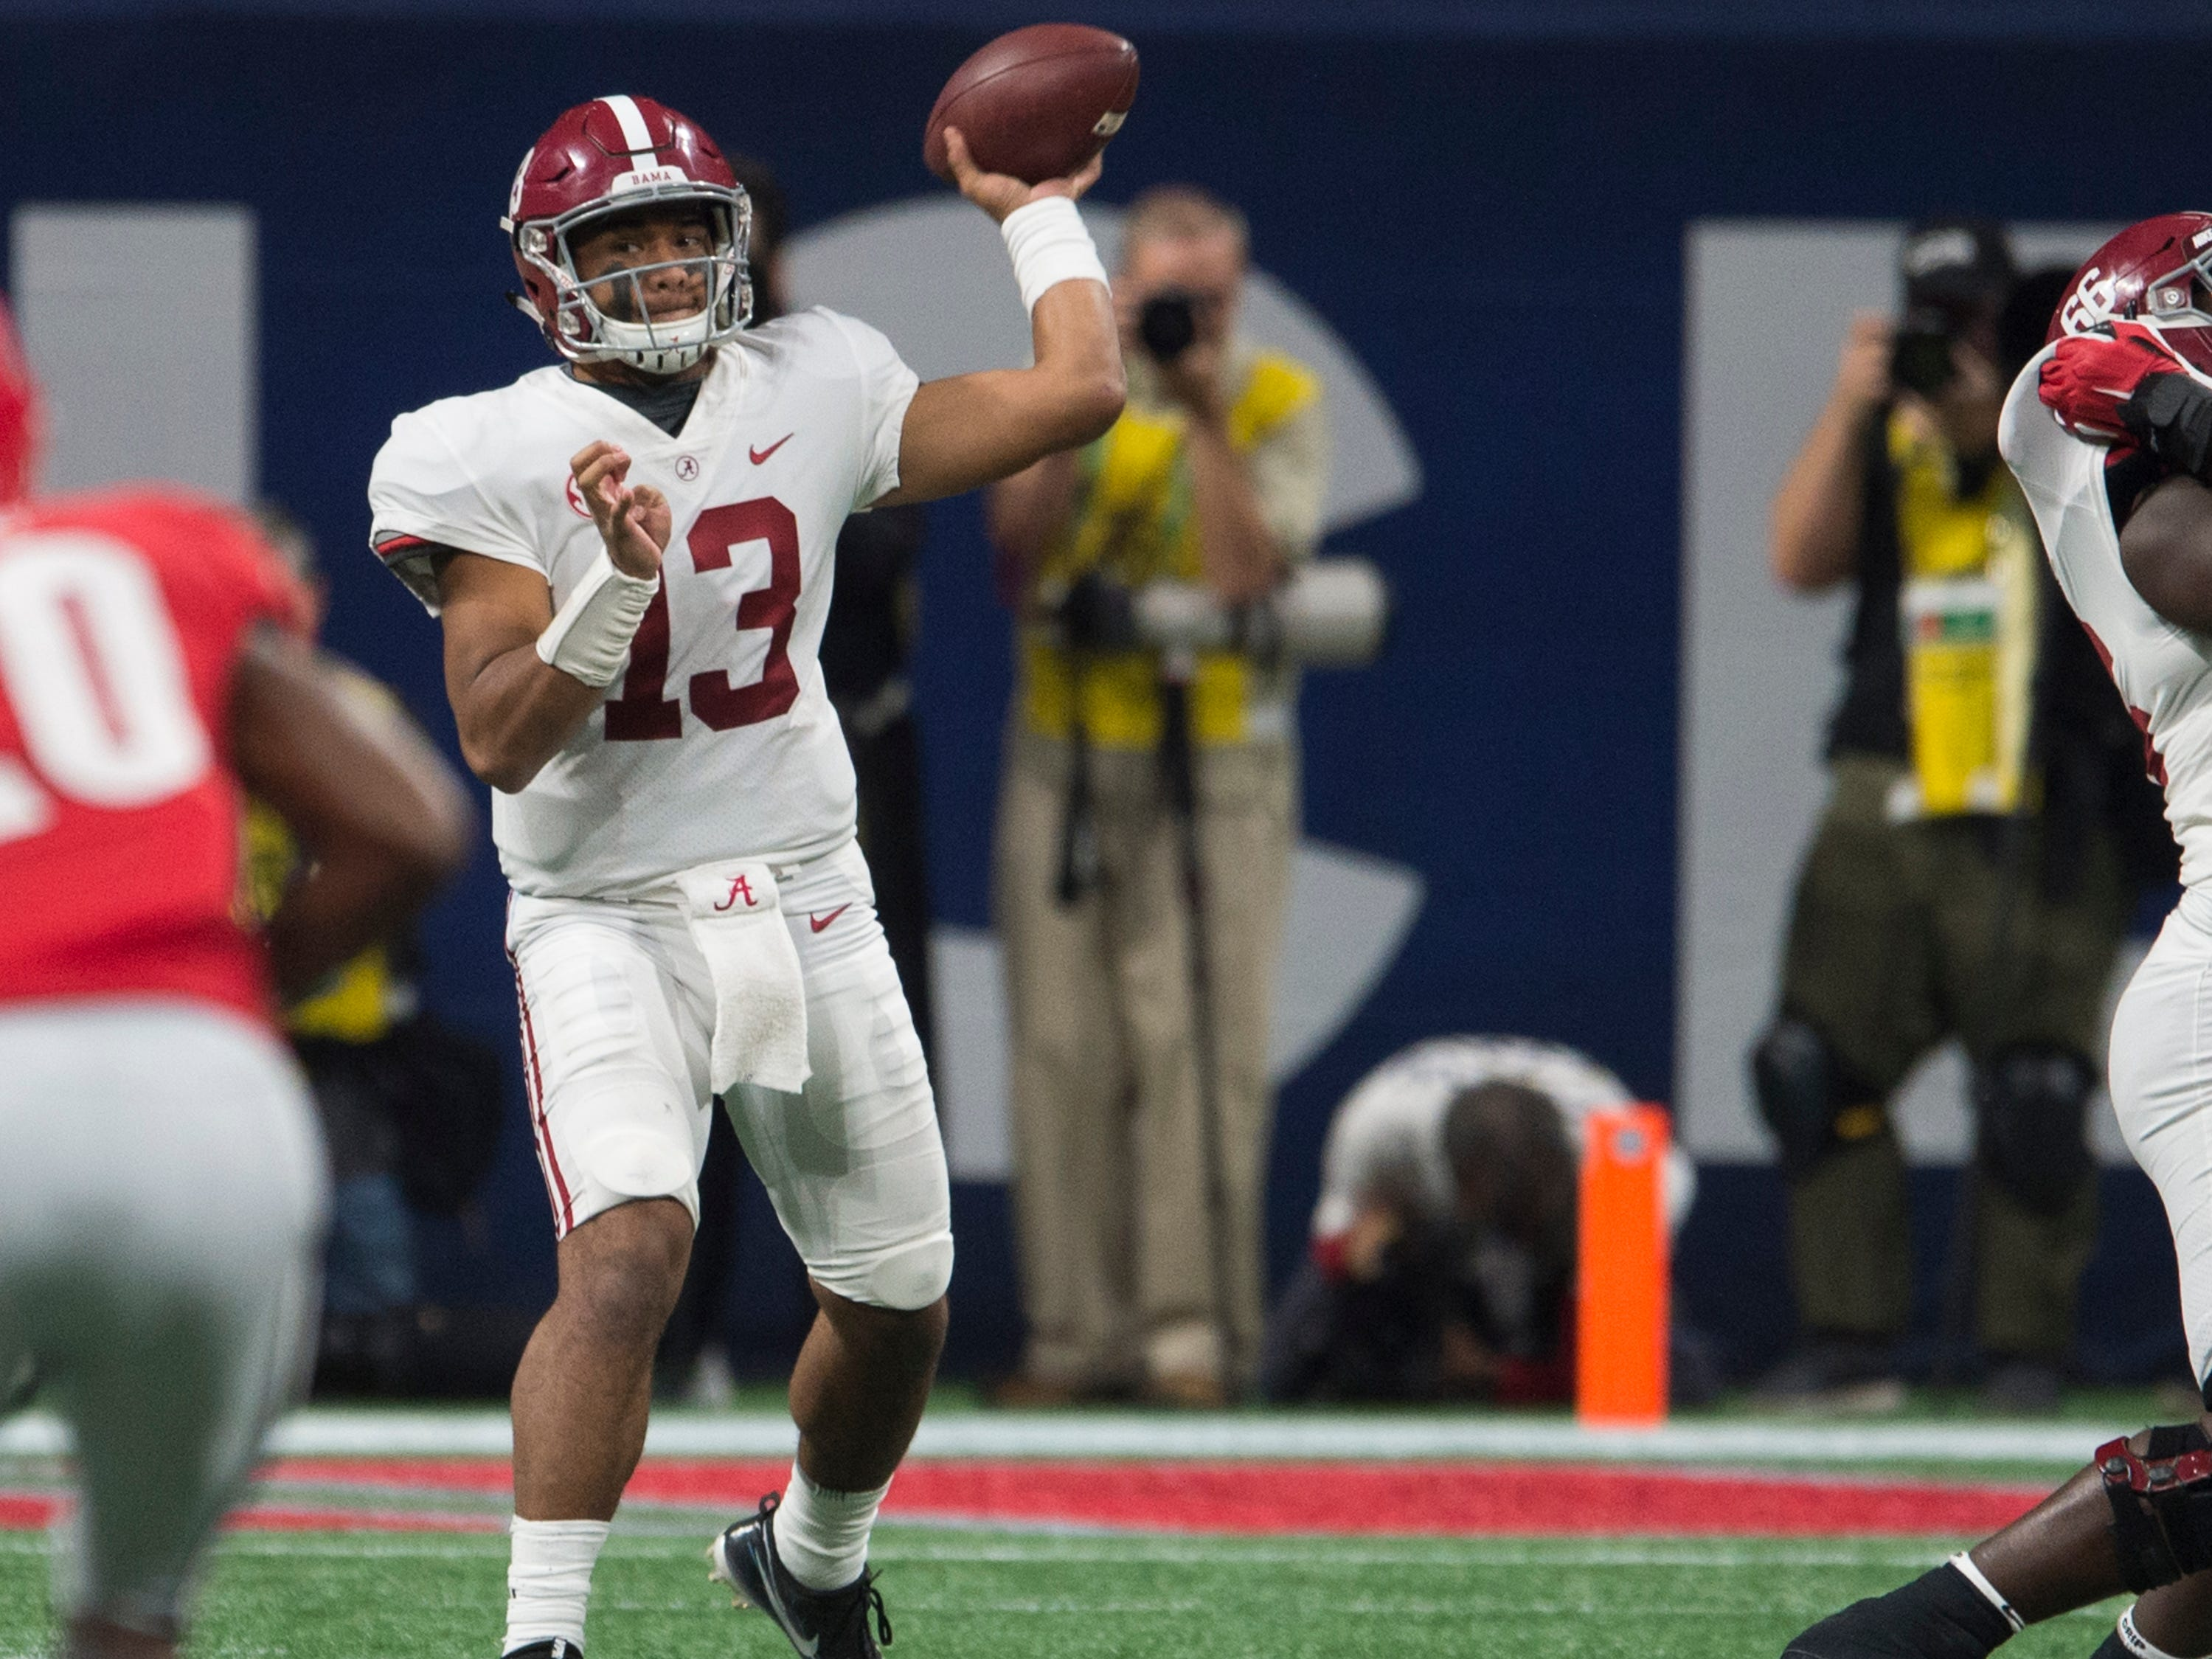 Alabama quarterback Tua Tagovailoa (13) throws the ball down field during the SEC Championship game at Mercedes-Benz Stadium in Atlanta, Ga., on Saturday Dec. 1, 2018. Alabama defeated Georgia 35-28.